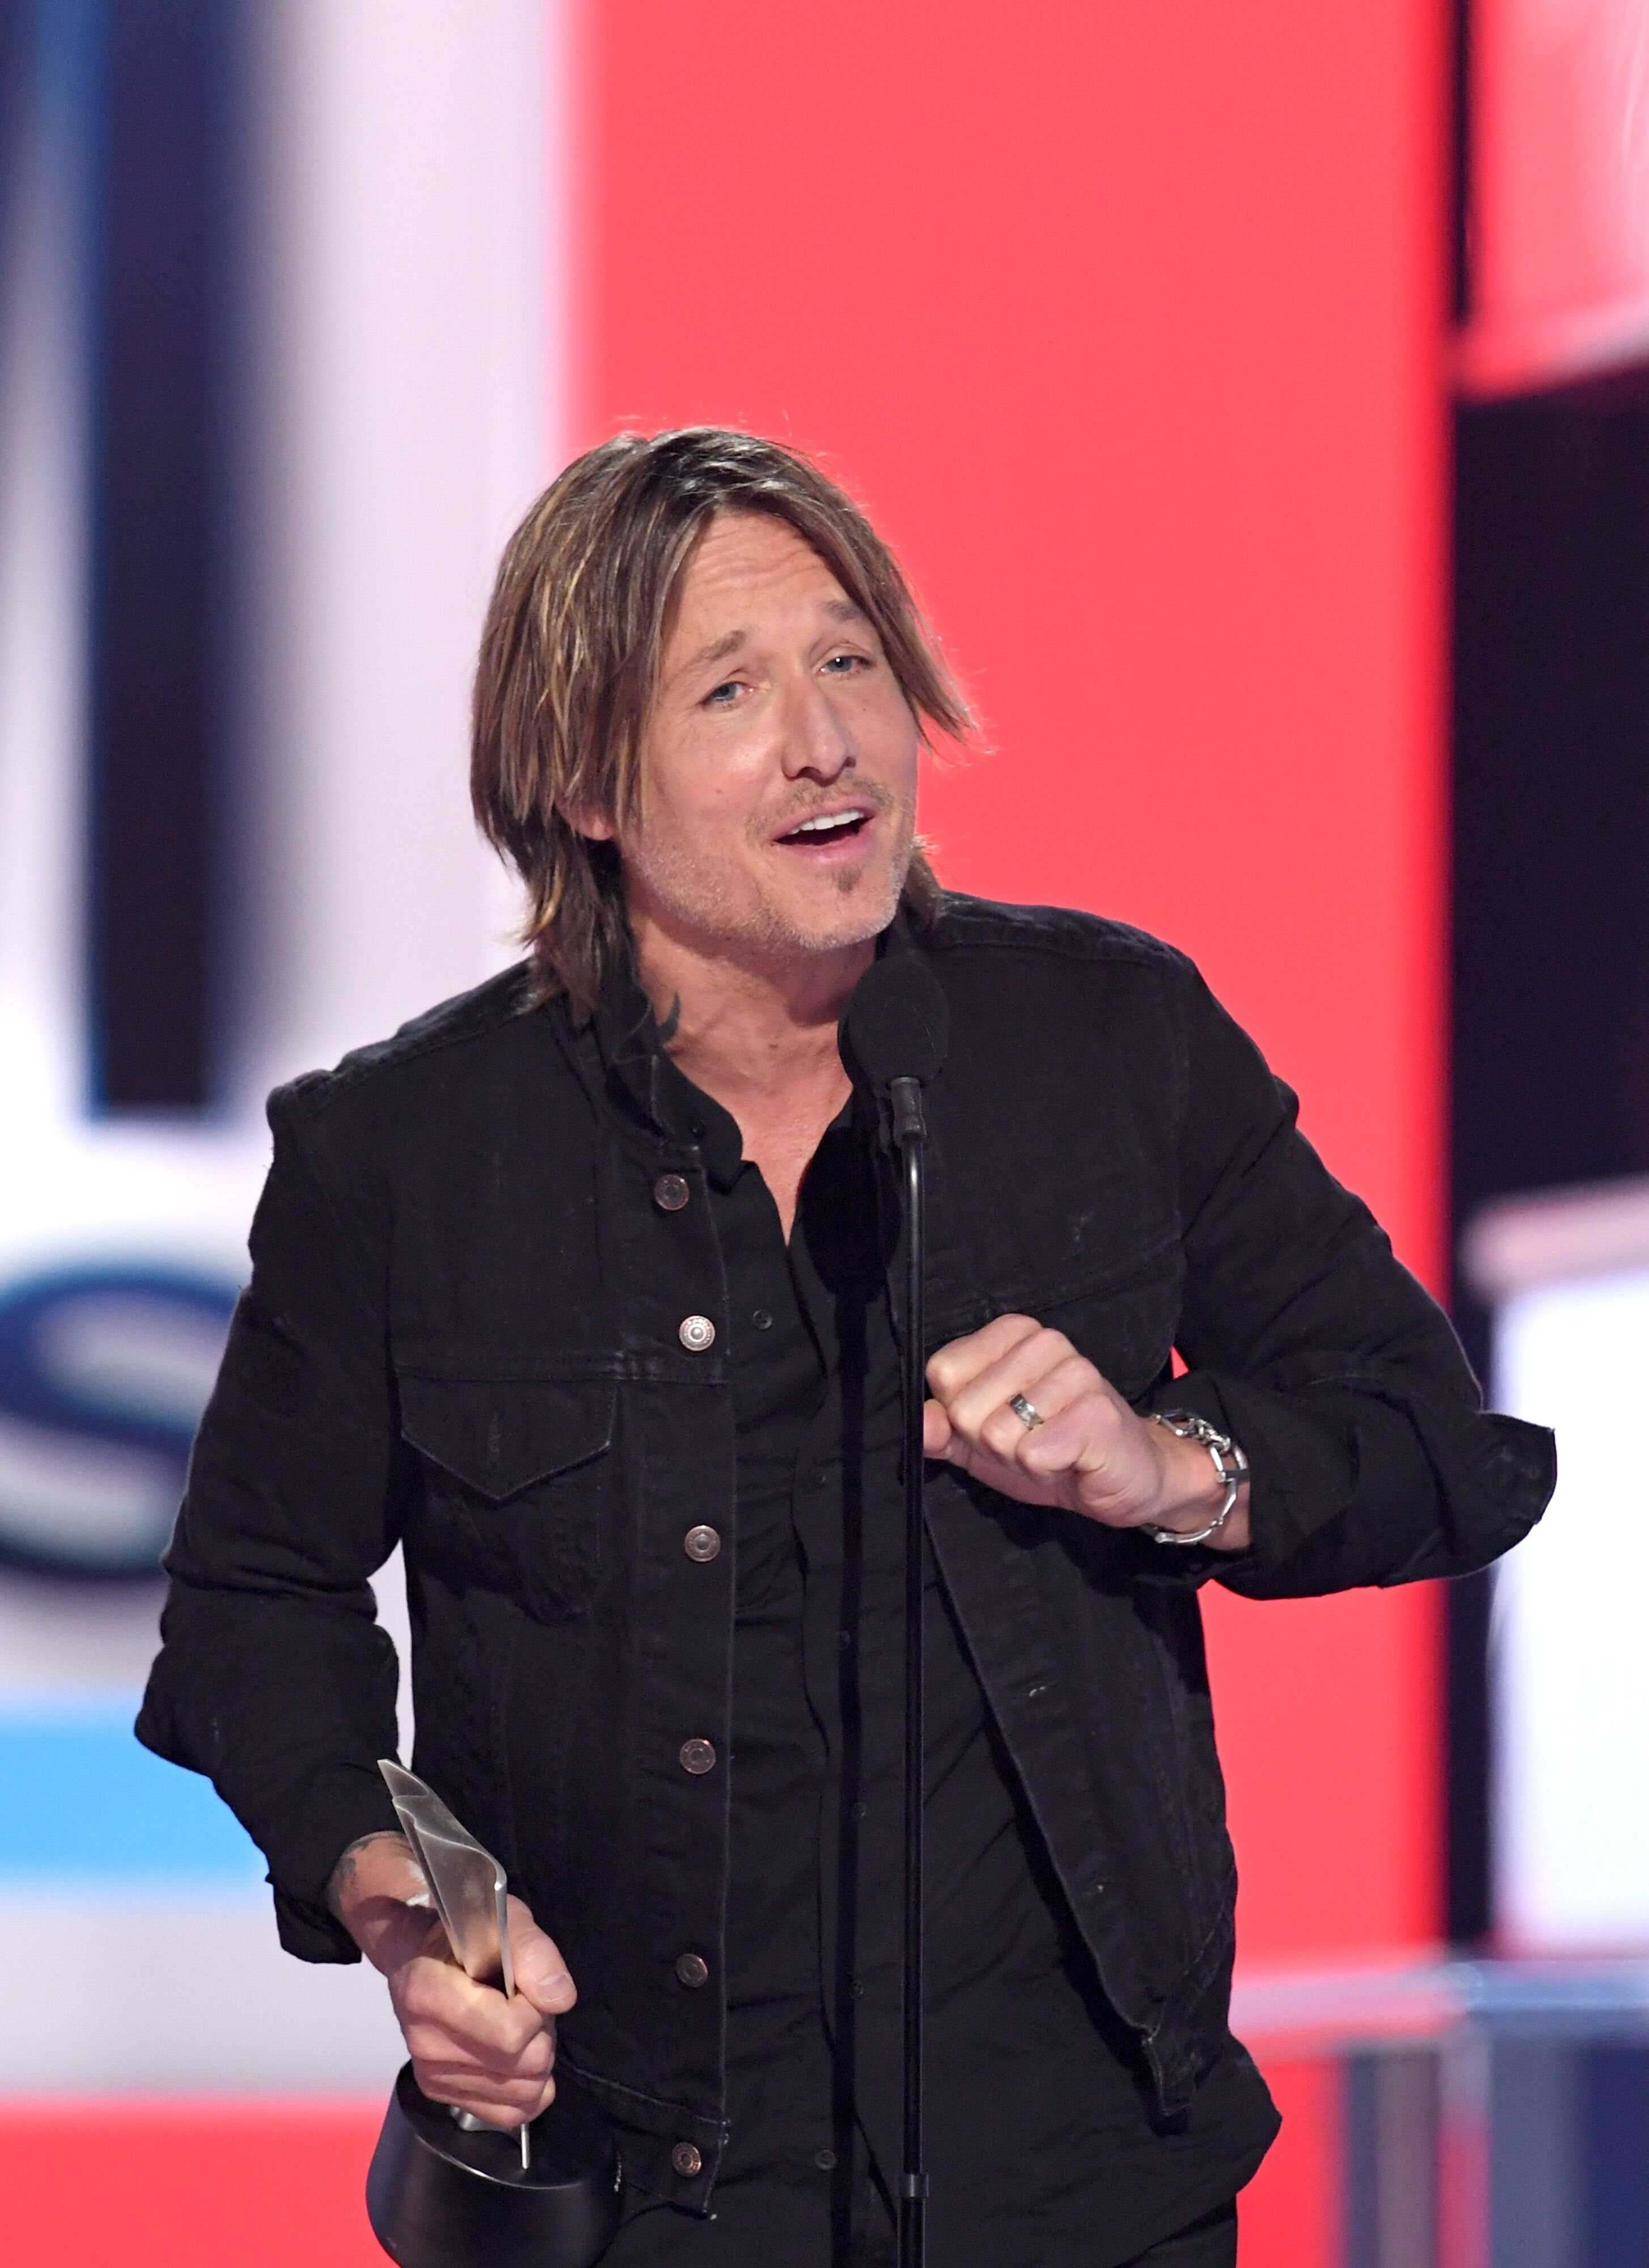 Keith Urban at the 54th Academy Of Country Music Awards on April 07, 2019, in Las Vegas, Nevada Photo Kevin Winter Getty Images